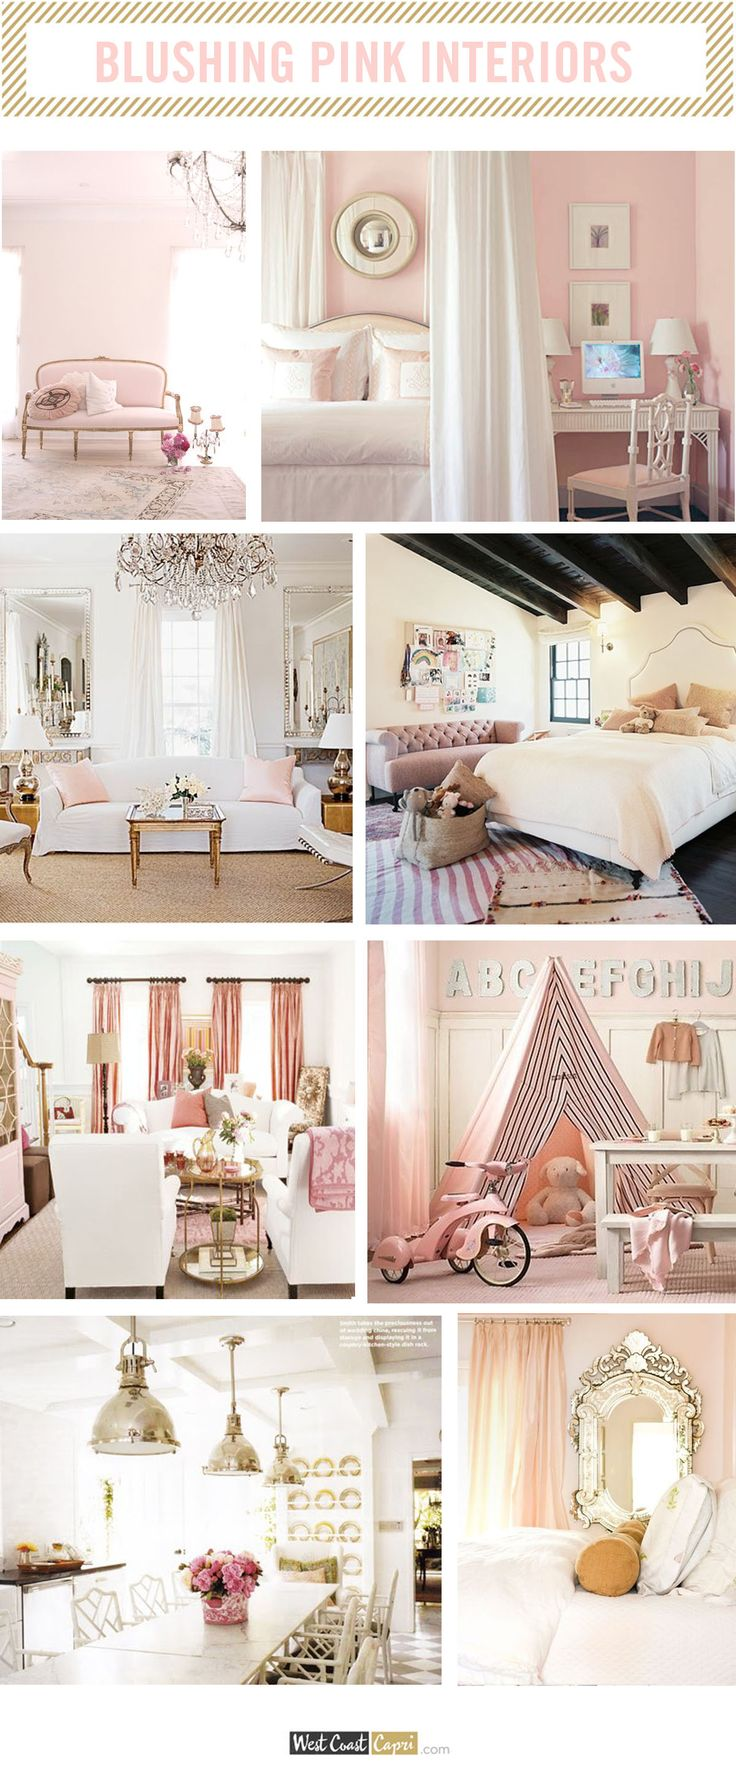 Pink bedroom paint colors - Best Pink Paint Colors Wild Aster And Ballerina Pink Shown Here Girls Room